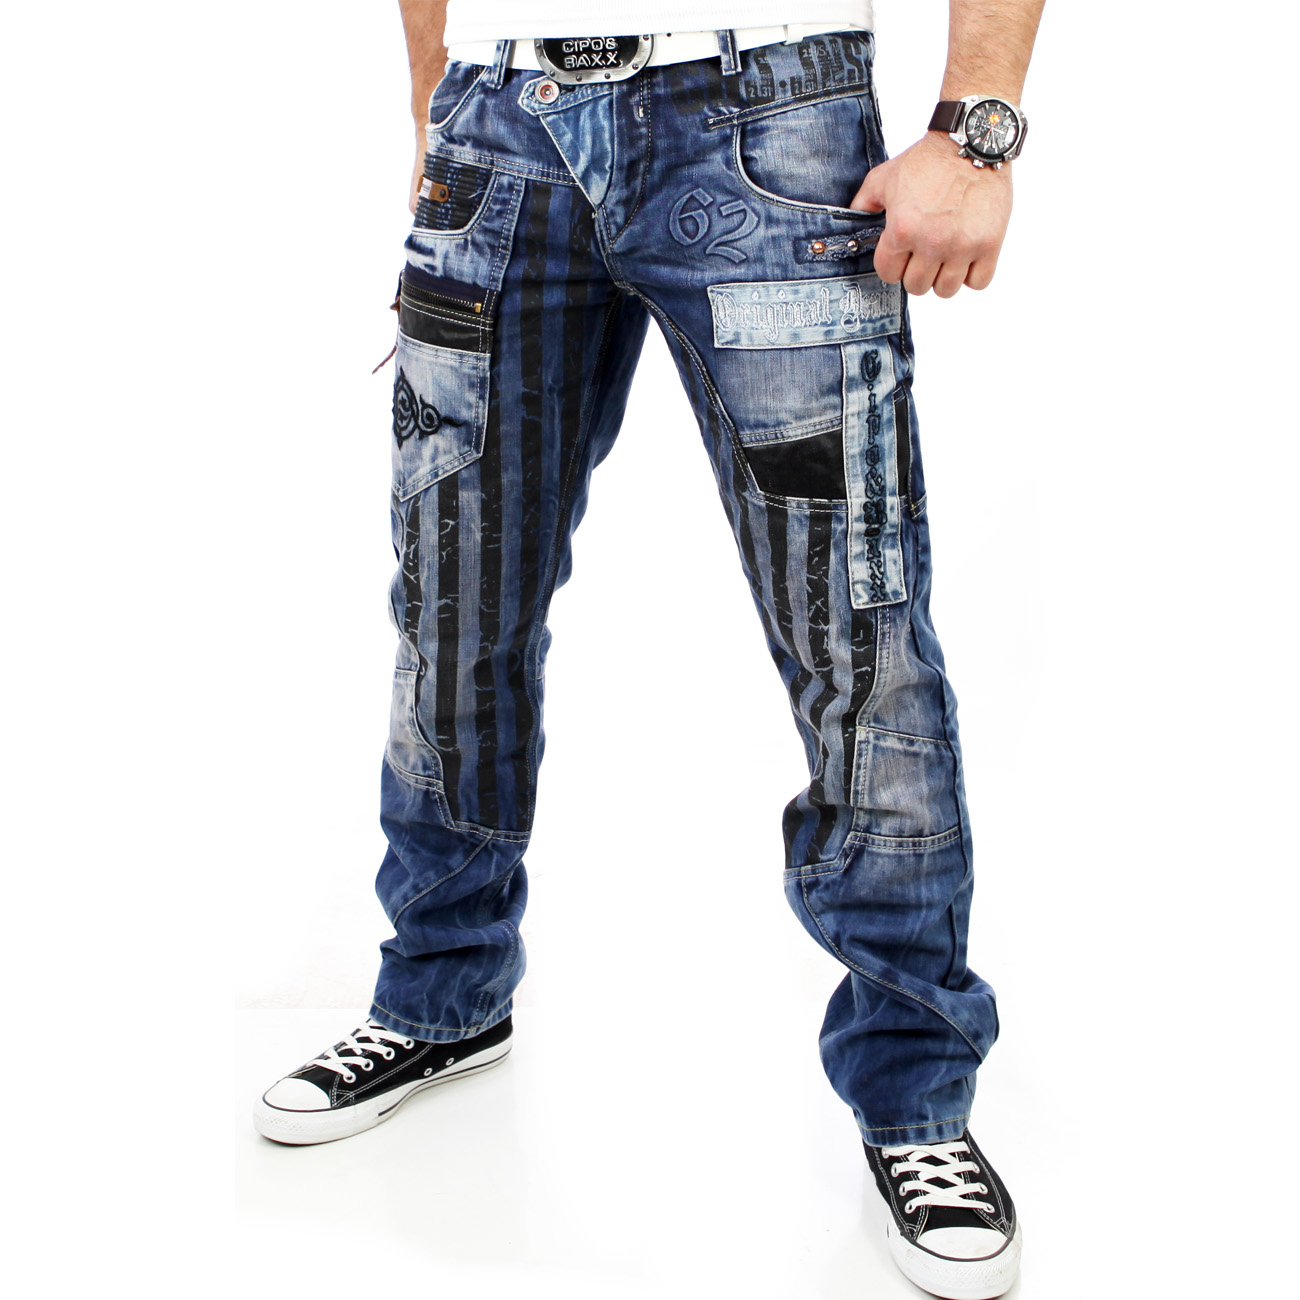 cipo baxx c 1115 herren jeanshose clubwear jeans hose. Black Bedroom Furniture Sets. Home Design Ideas